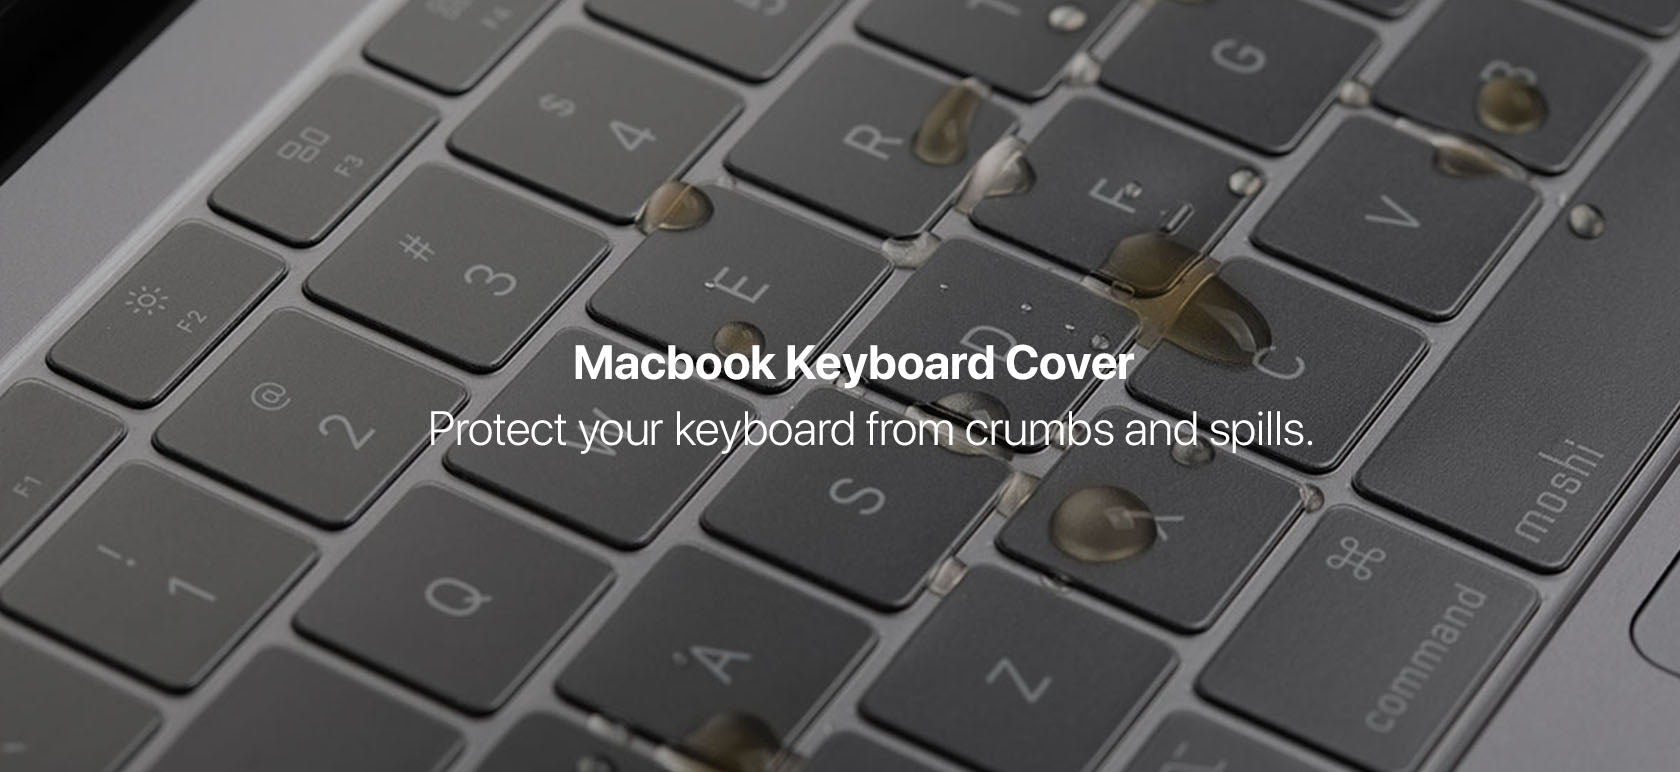 Macbook Keyboard Cover - Protect your keyboard from crumbs and spills.